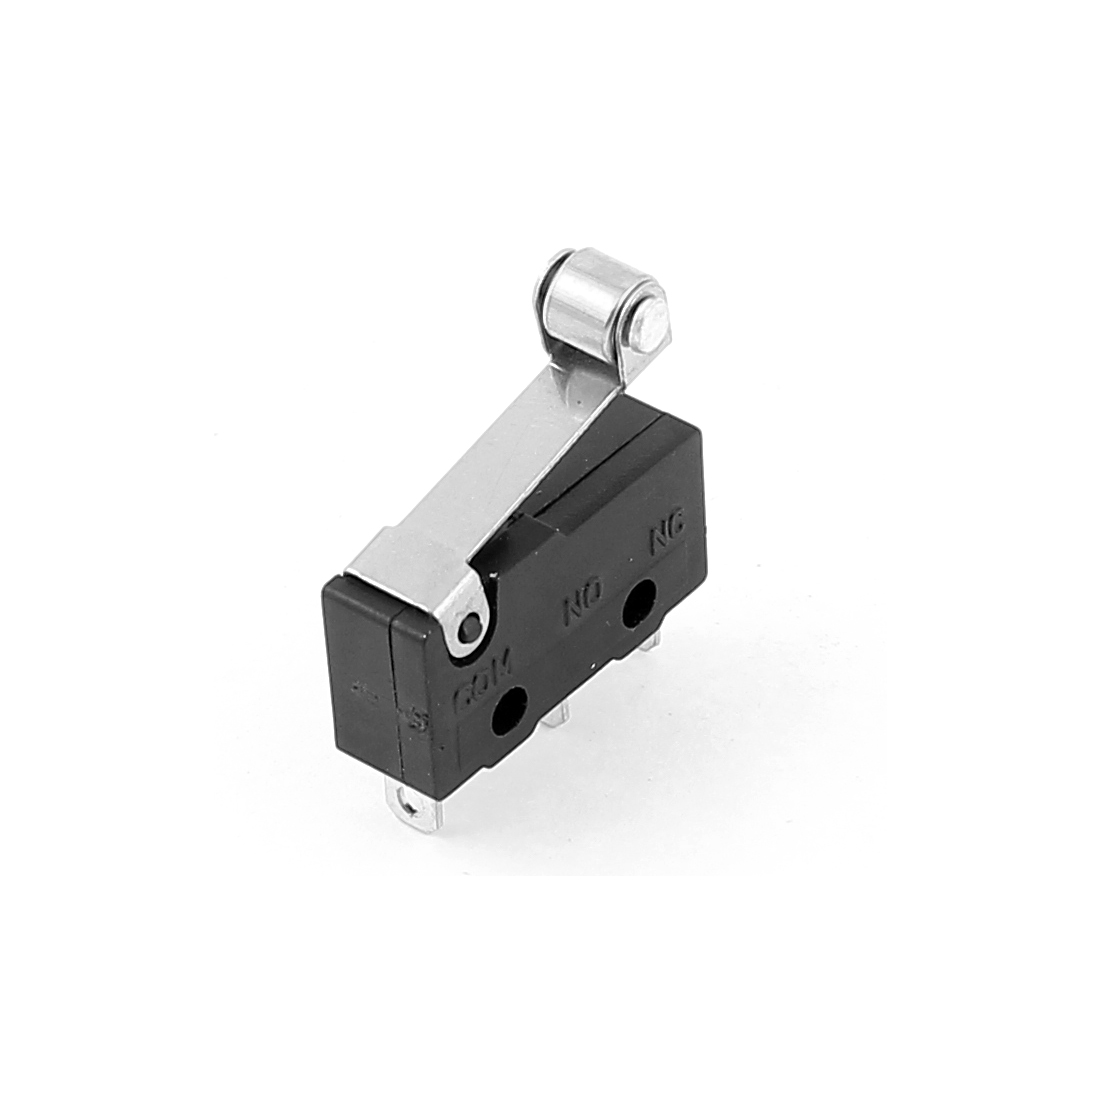 AC220 5A Micro Limit Switch Short Roller Lever Arm Subminiature SPDT Snap Action